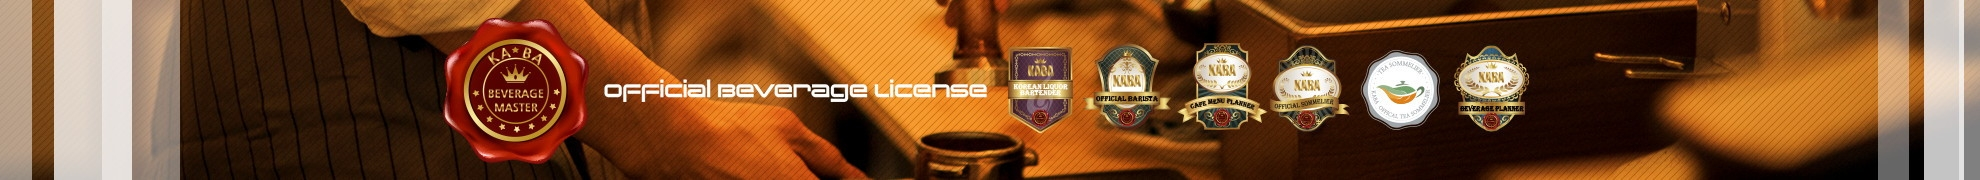 Official Beverage License